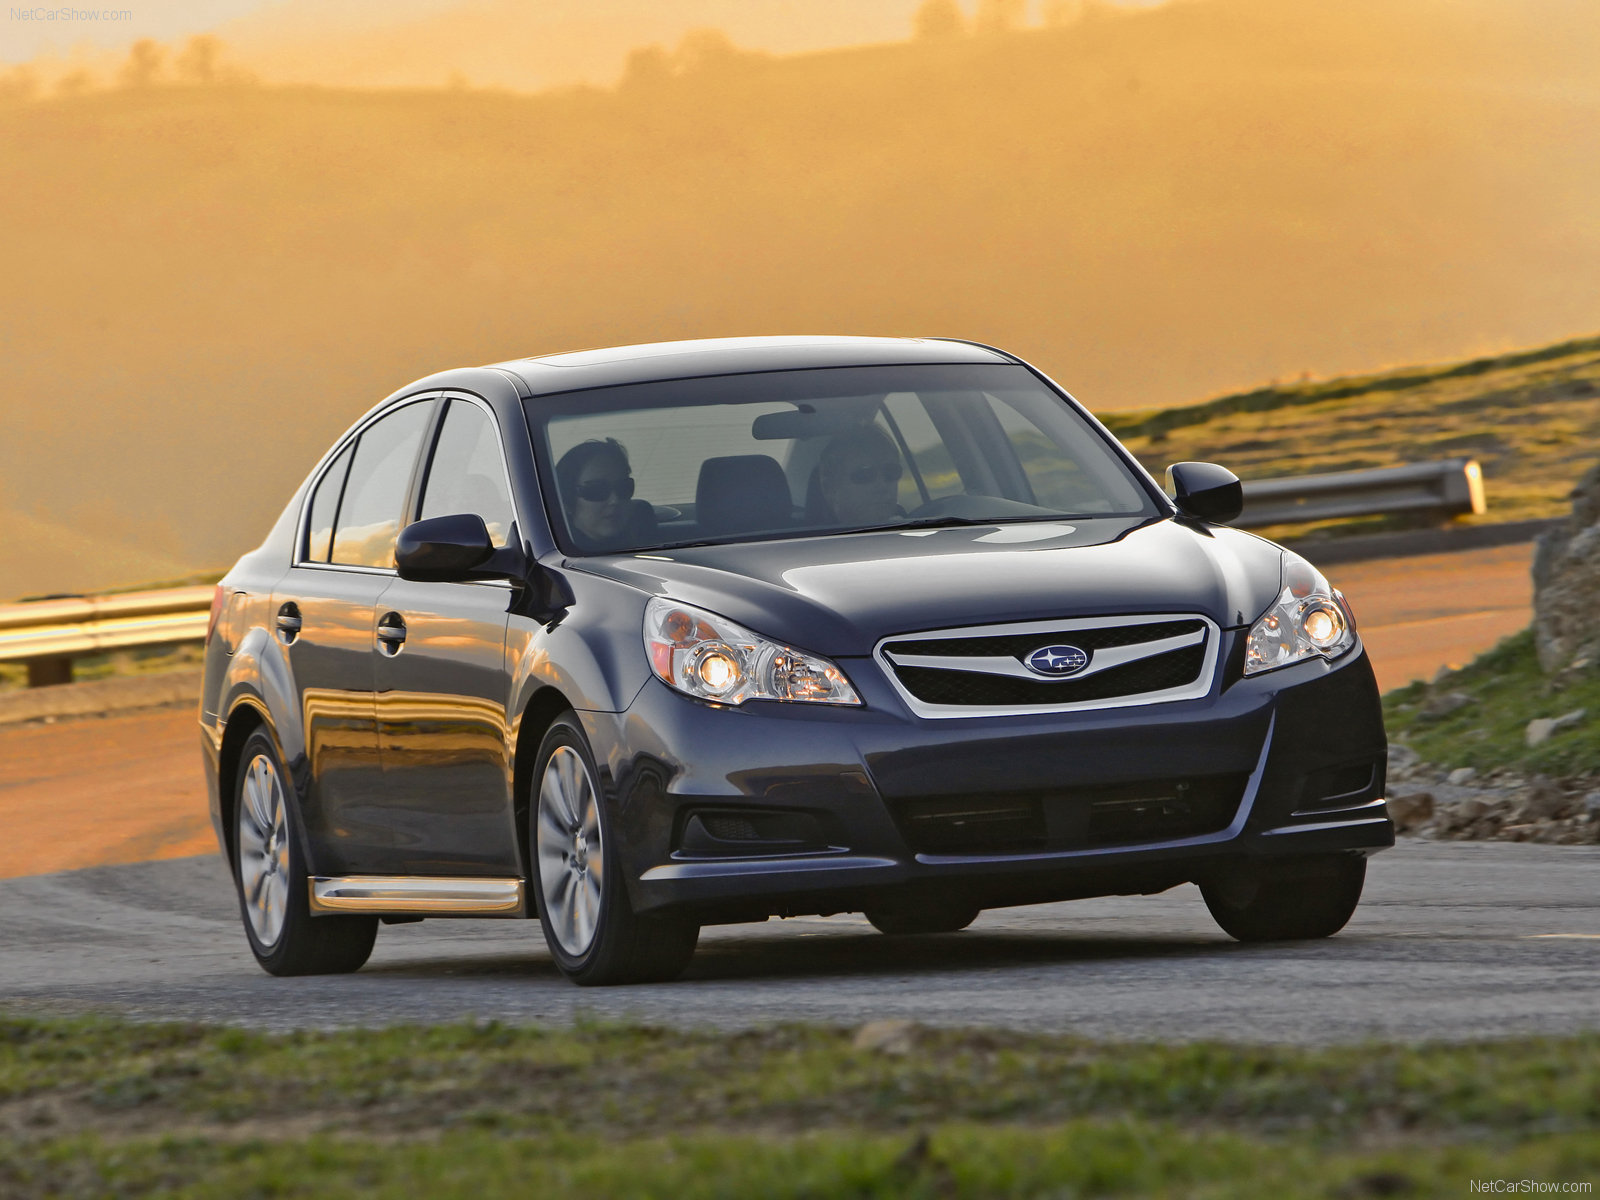 Subaru-Legacy-2010-wallpaper